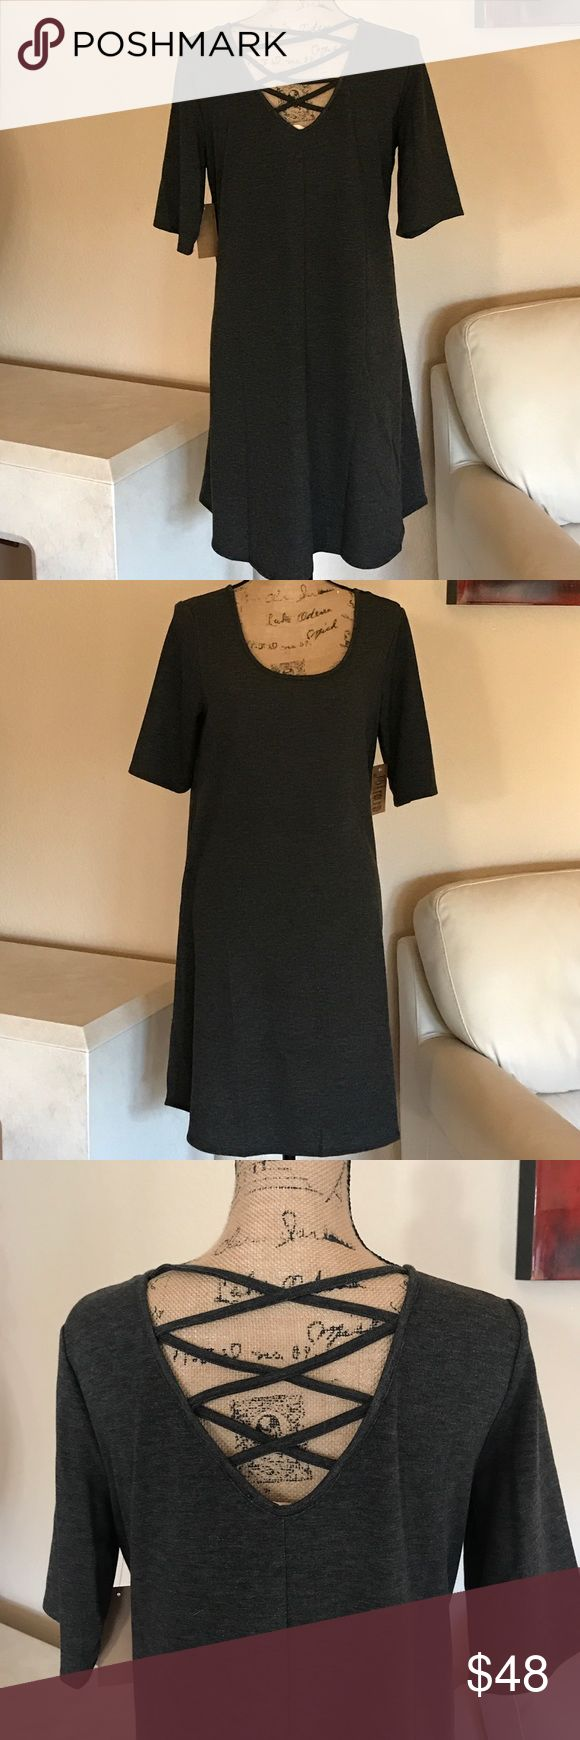 """""""JUST FOUND"""" the perfect Charcoal Grey Dress 1X This beautiful swing dress is 63% Rayon 32% Polyester 4% Spandex. It has the look and feel of a very lightweight Sweatshirt but it is light and must comfortable for fall. See the pic of what the material looks like on the inside of the dress. JUST FOUND Dresses"""